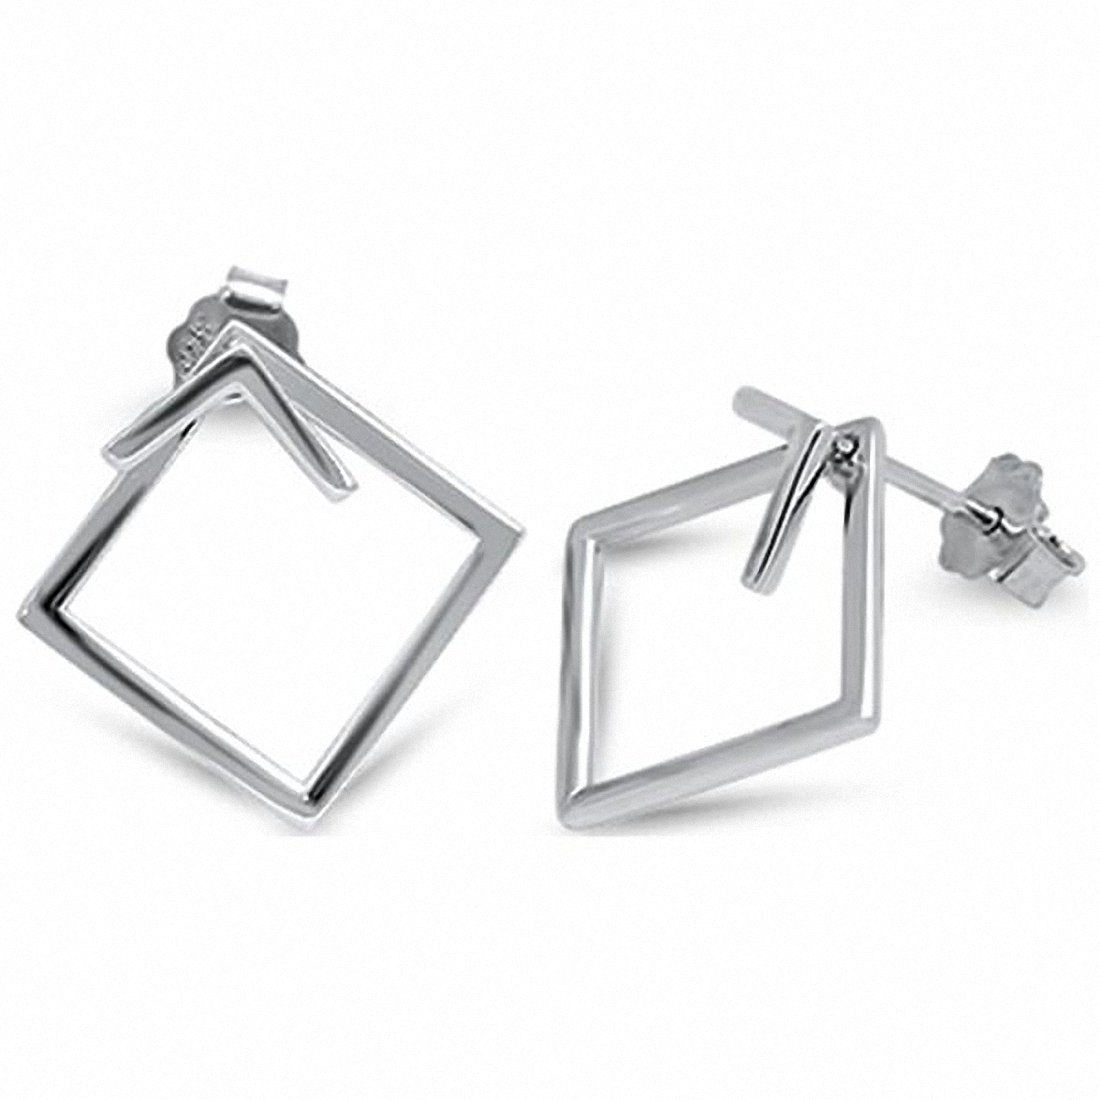 Plain Square Stud Earrings Rose Tone 925 Sterling Silver choose Color